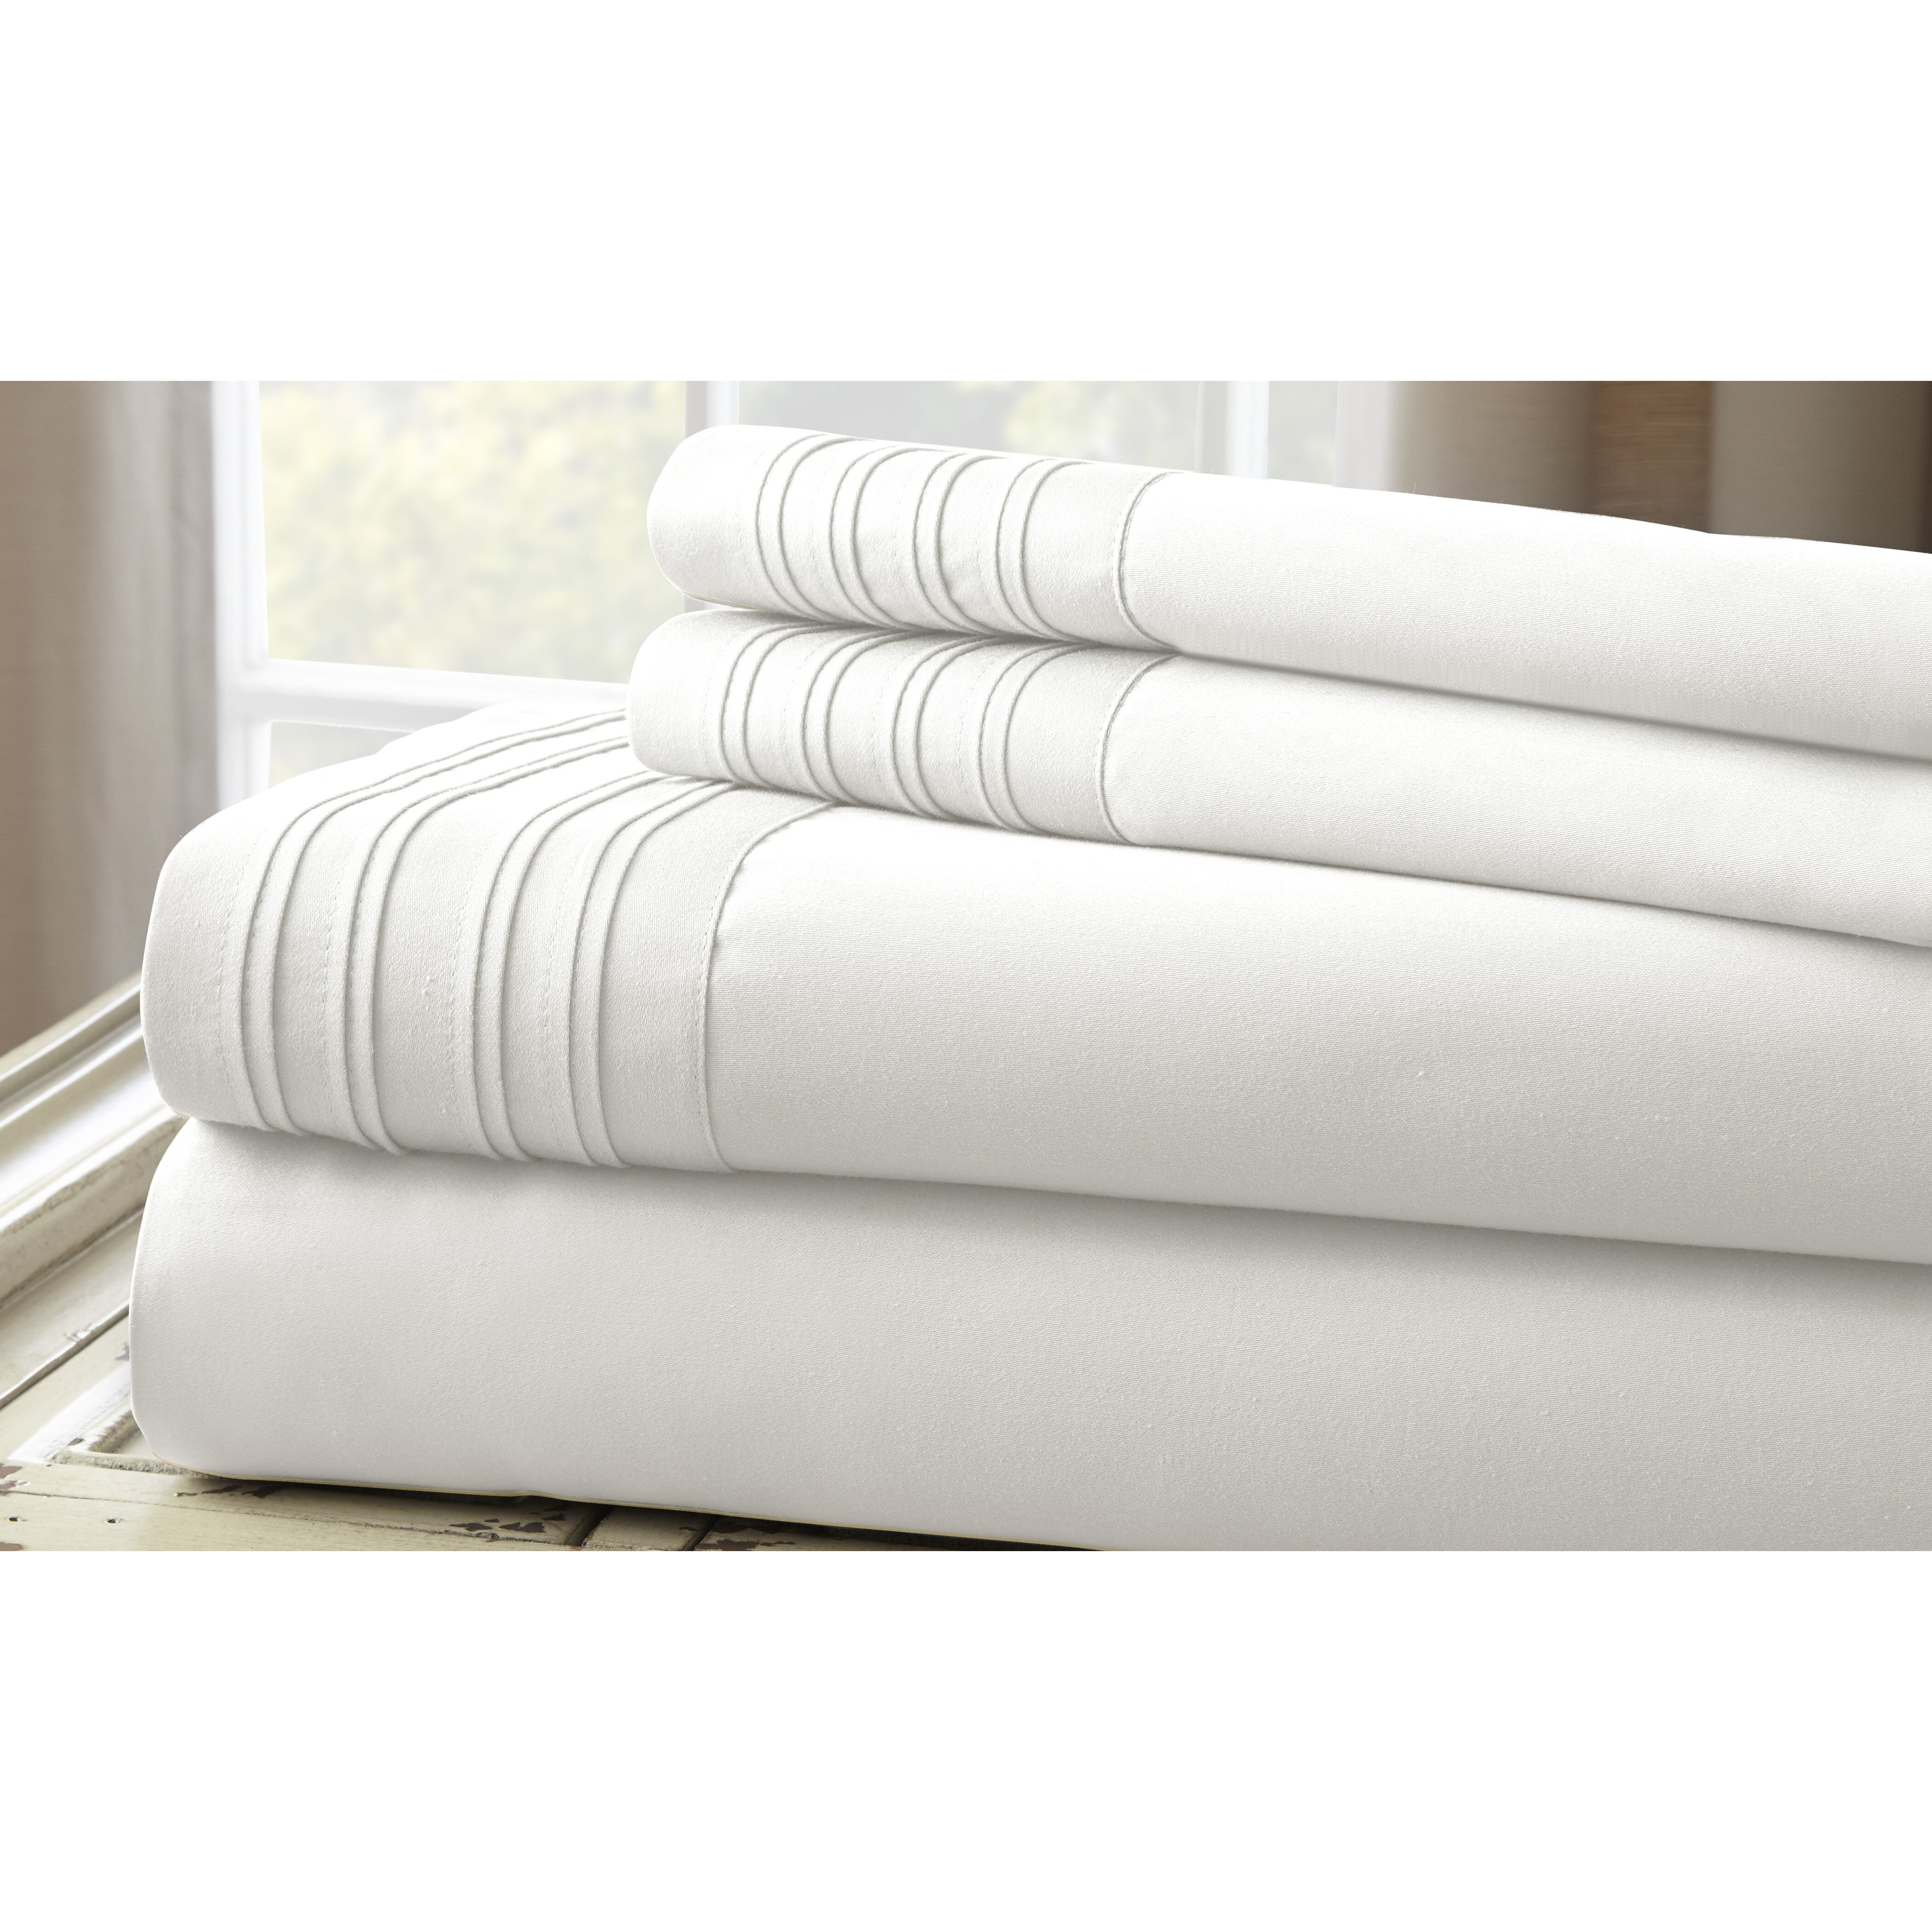 Colonial textiles 1000 thread count 4 piece sheet set for What is thread count in sheets